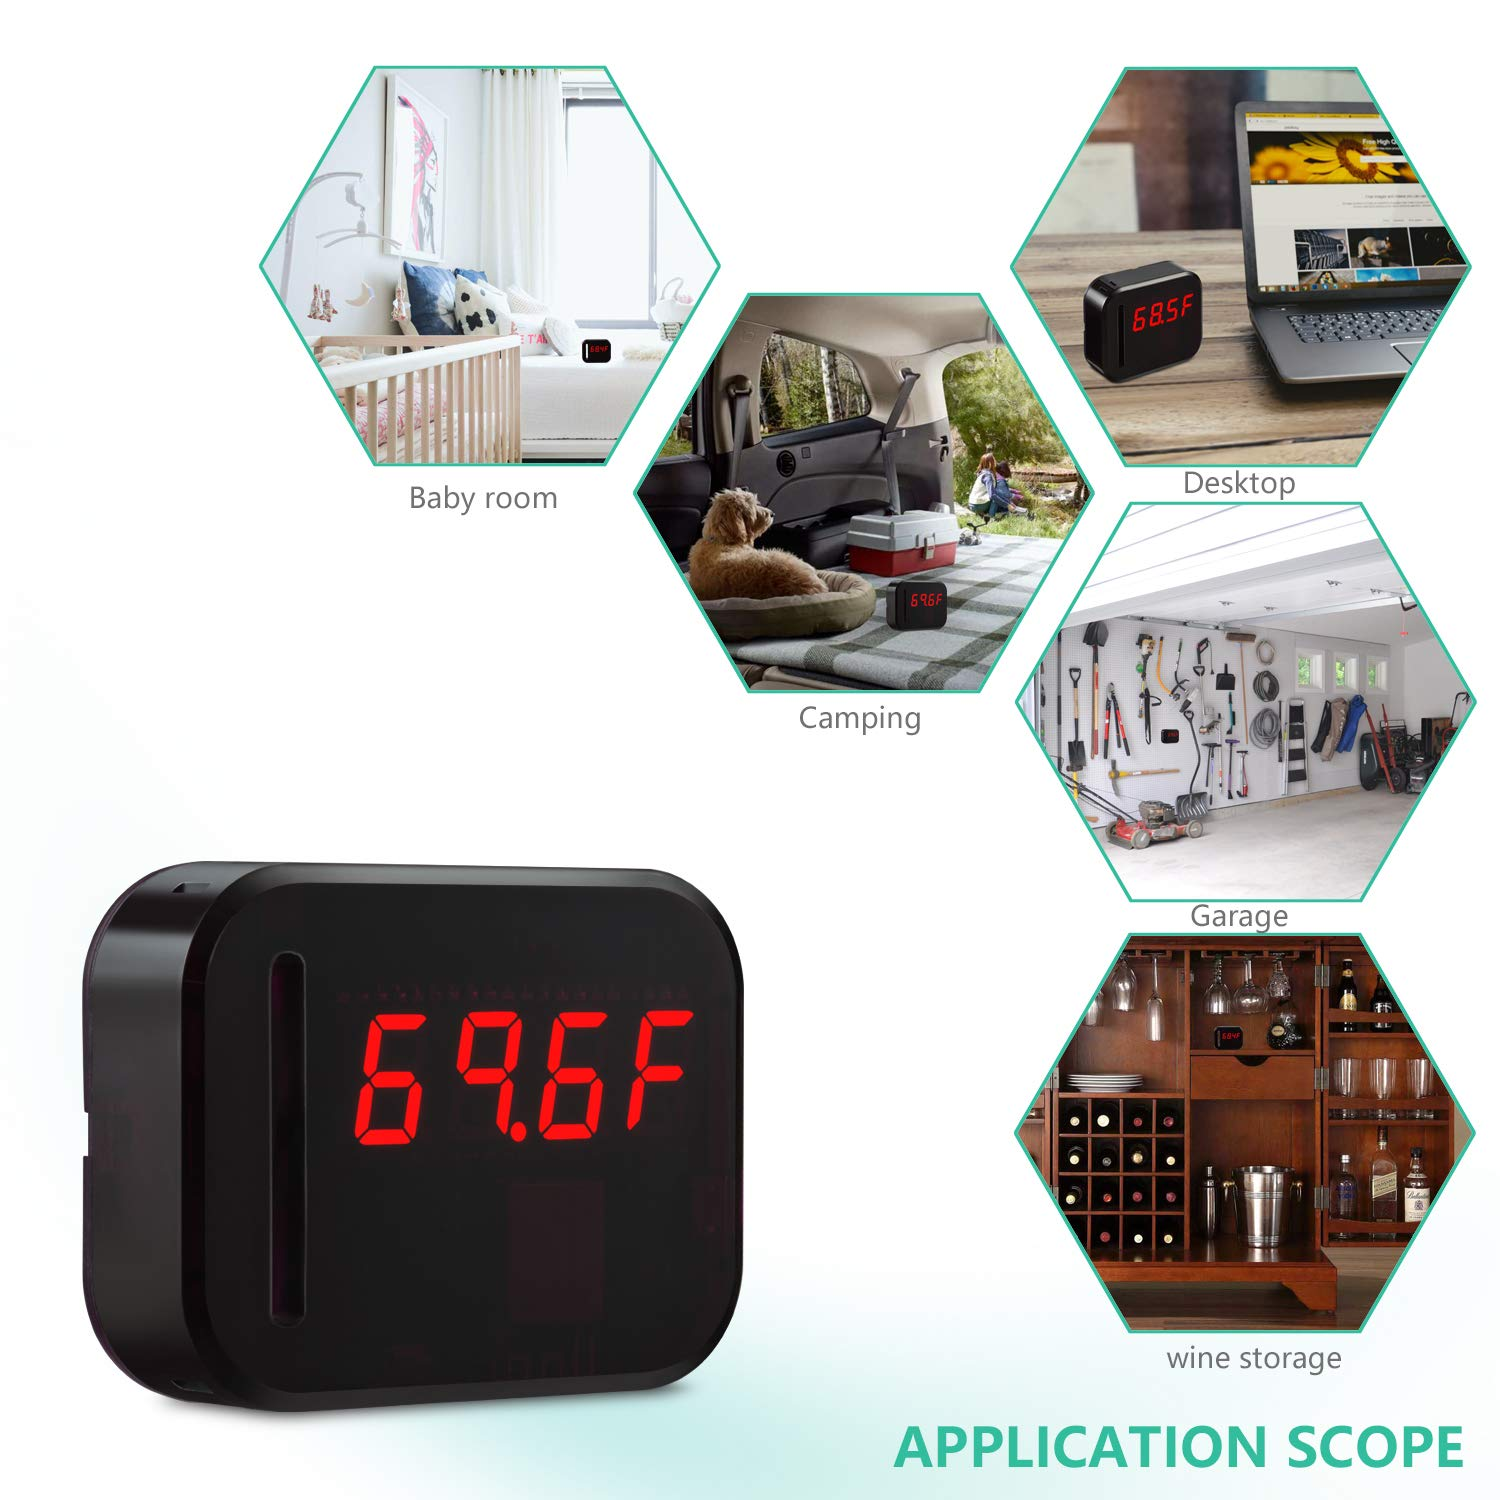 WiFi Temperature Humidity monitor, LED Digital Thermometer Hygrometer monitor, indoor/outdoor Temperature Humidity sensor with Alerts. Free iPhone/Android Apps, web browser monitor 24/7 from Anywhere by Ismart56 (Image #5)